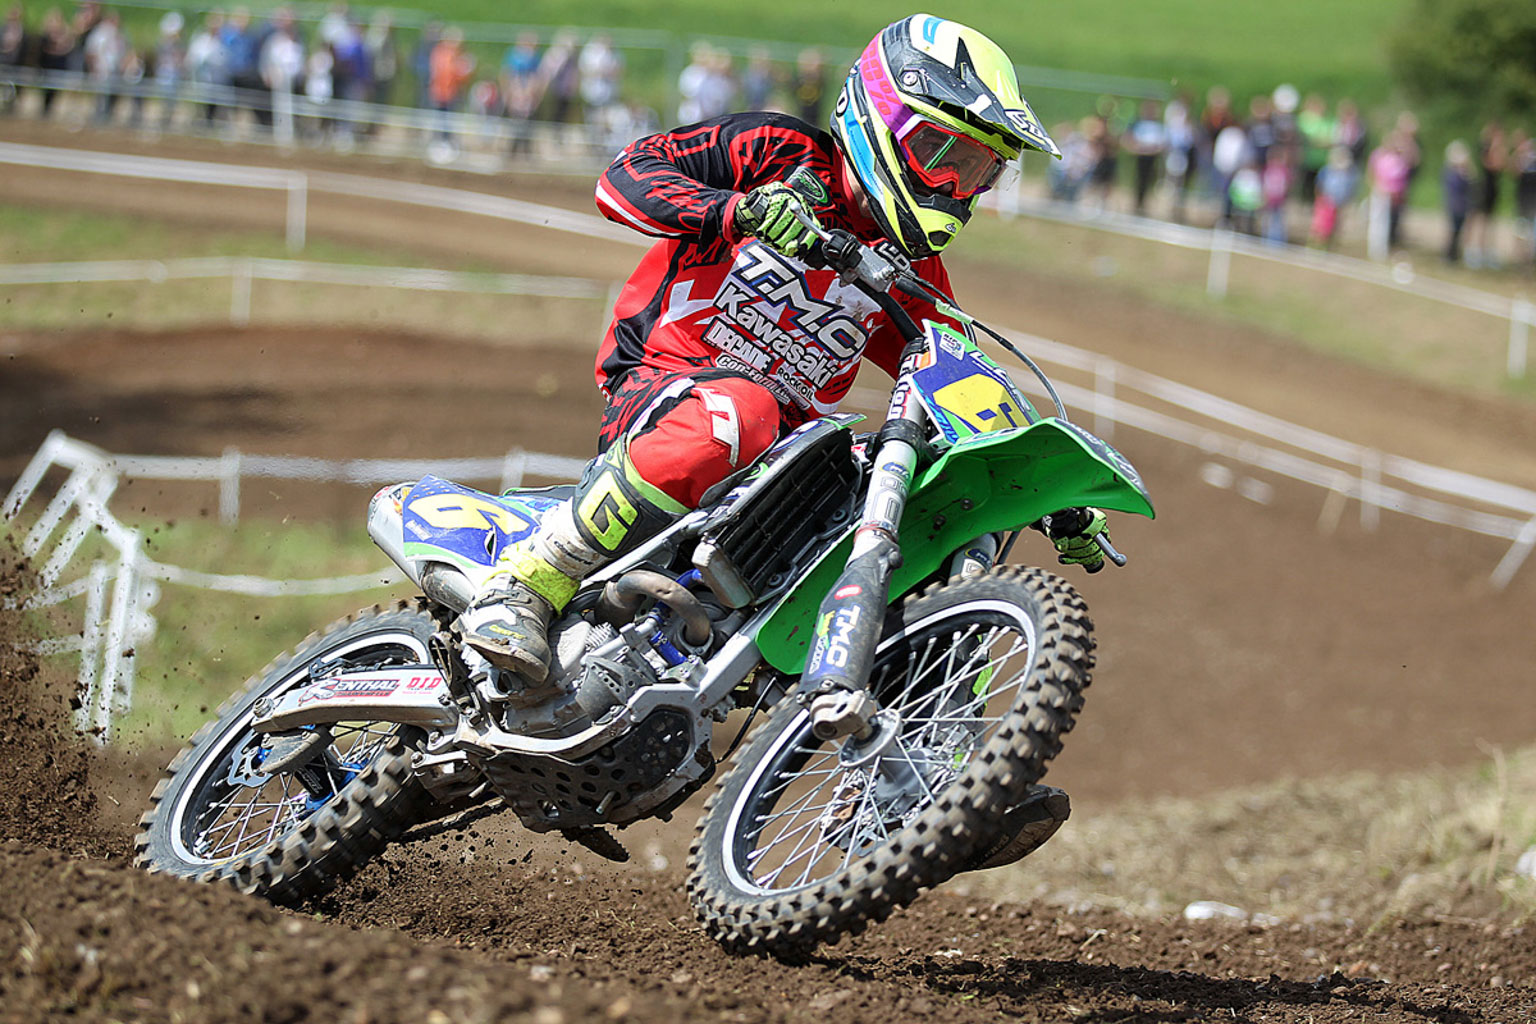 Jansen Day, 2nd in the Adult A MX2 class